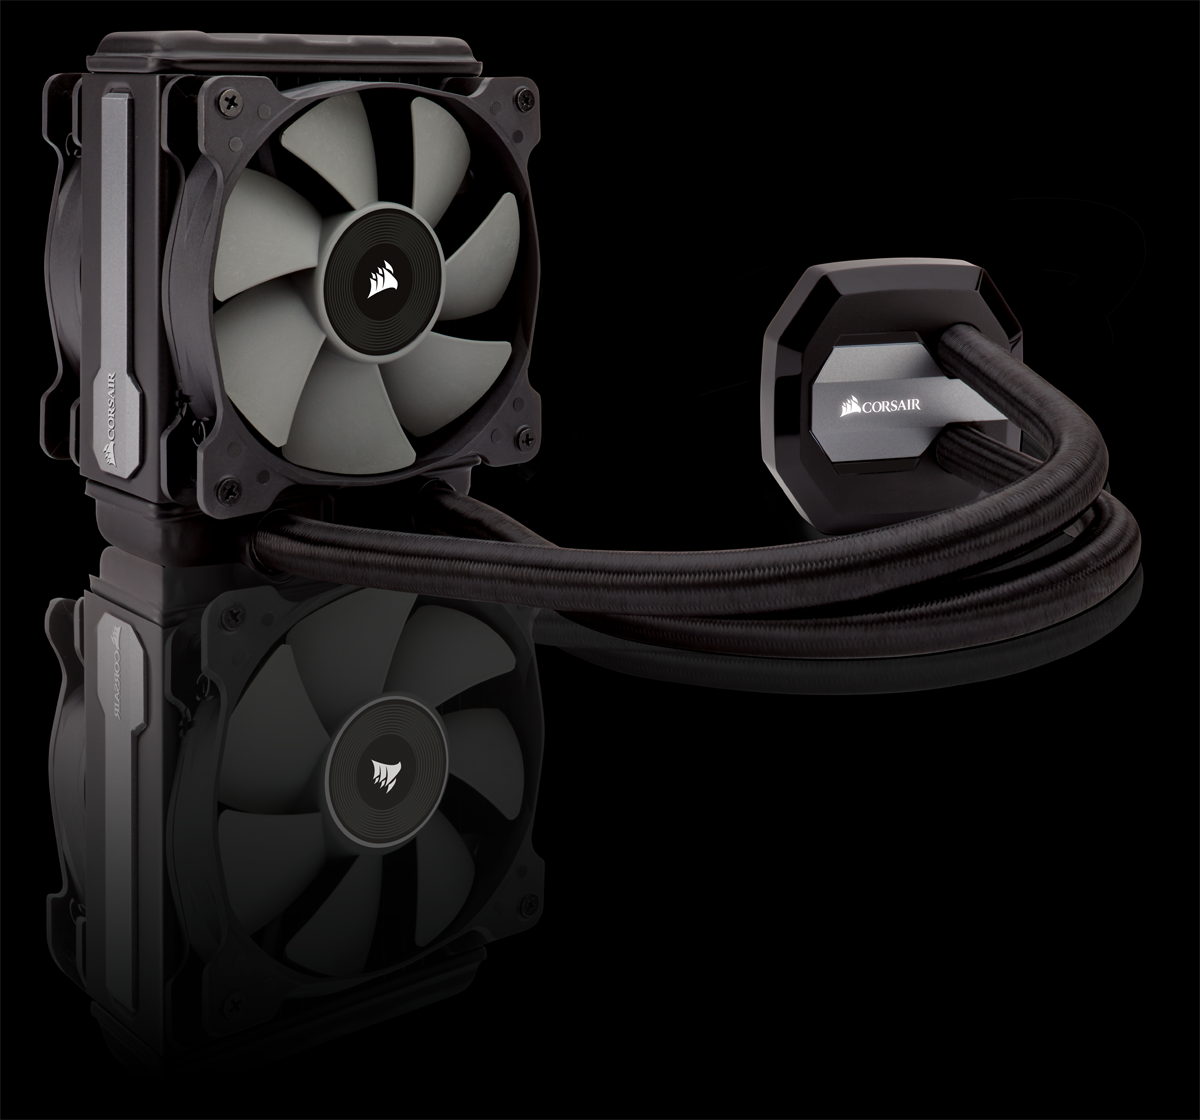 slide 1 of 7,show larger image, the flexible, powerful 120mm liquid cpu cooling system for high performance pcs.